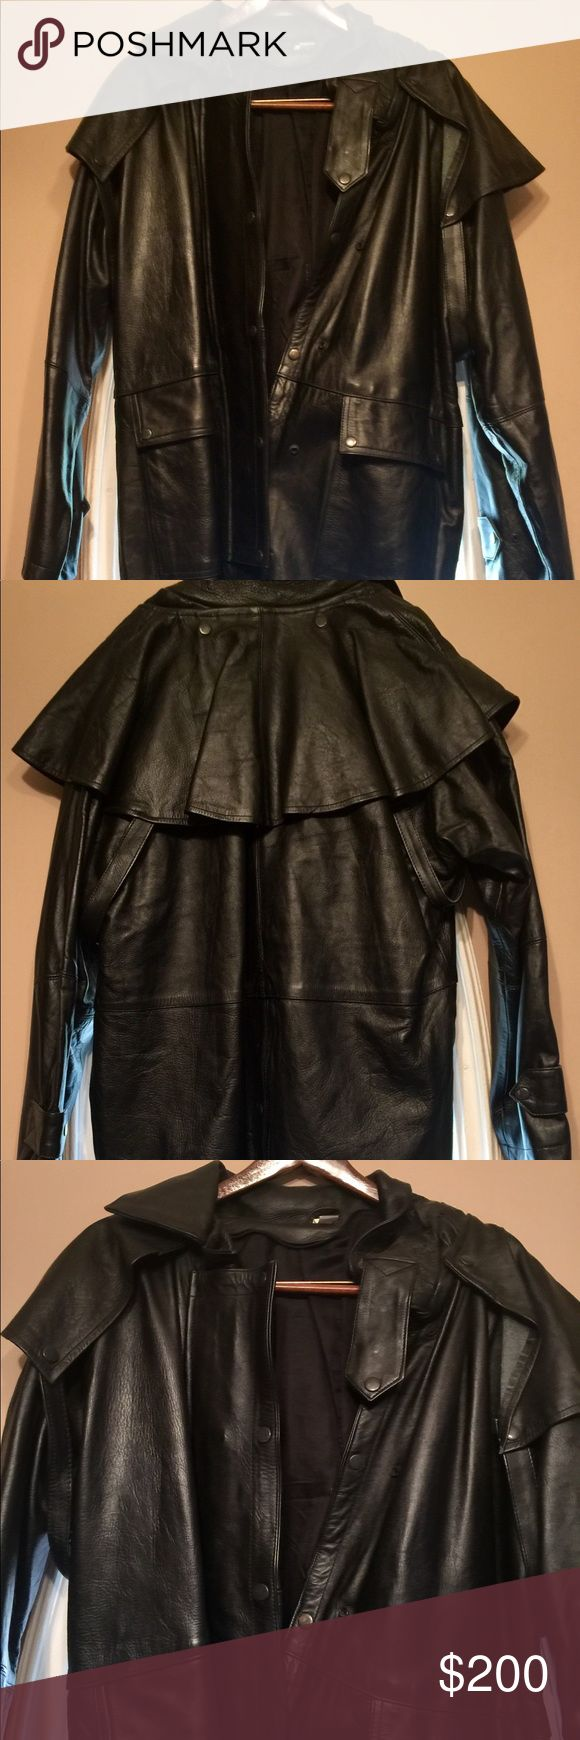 Men's Full Length Black Genuine All-Leather Duster Full length leather duster jacket.  Great Condition  size XL Jackets & Coats Trench Coats